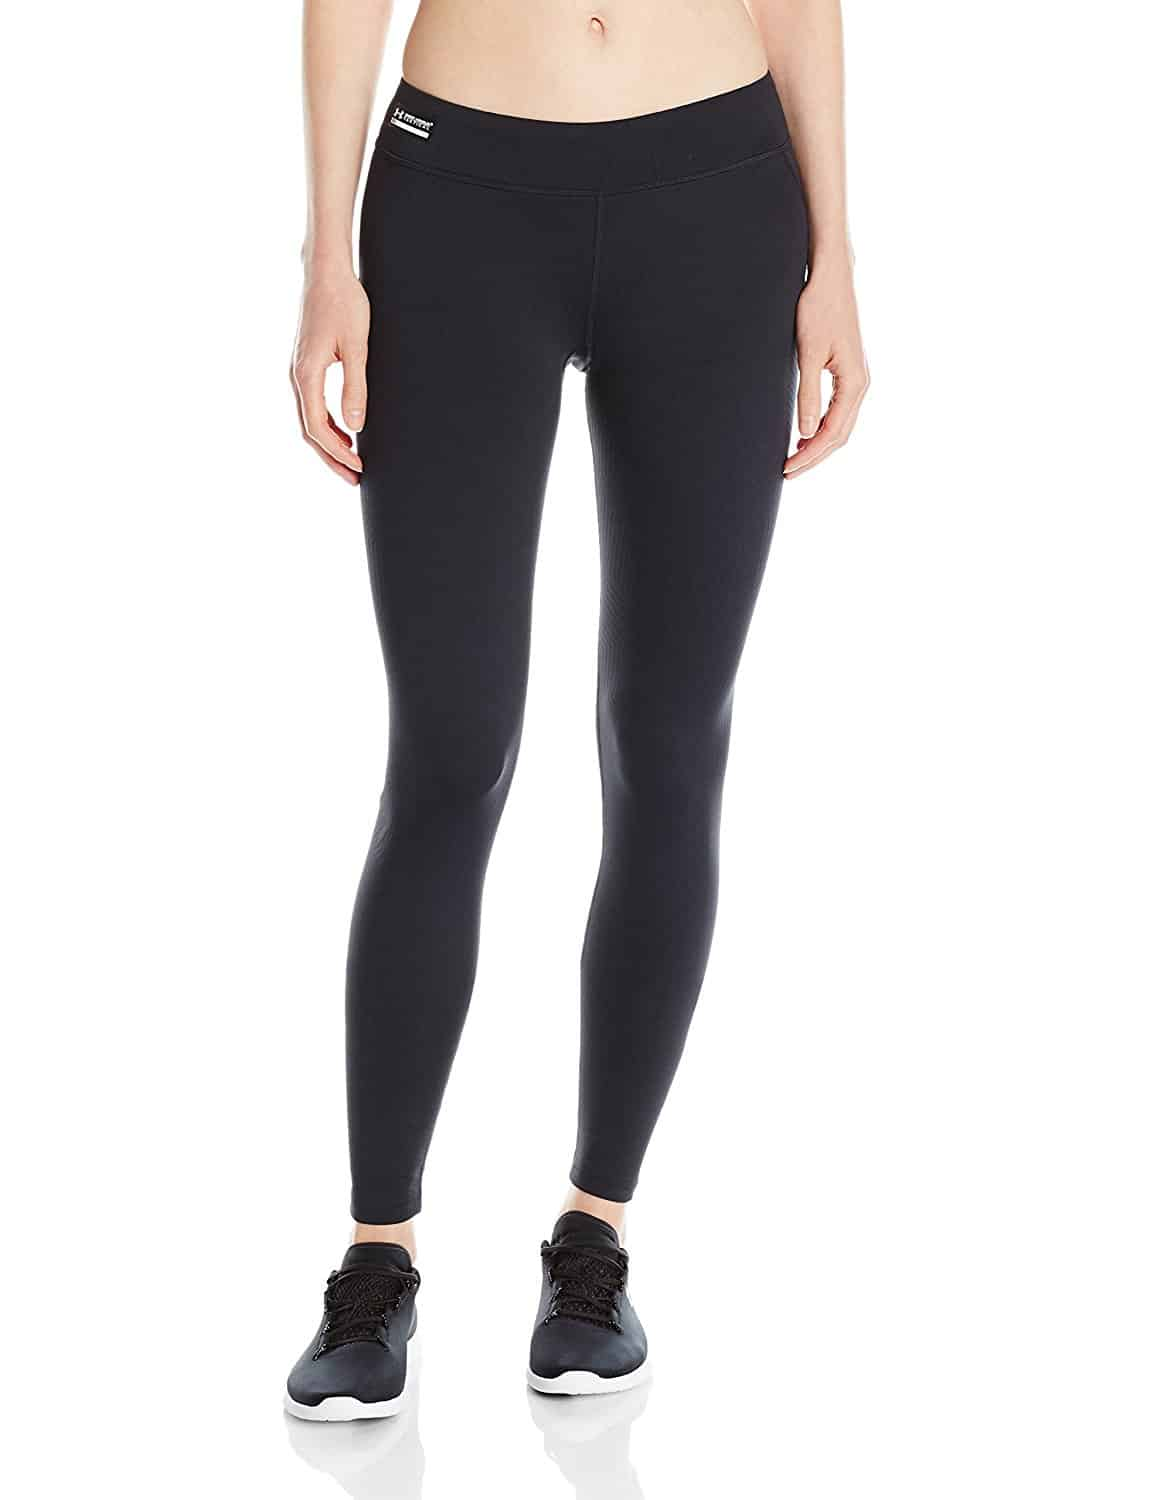 Under Armour ColdGear Infrared Leggings Review